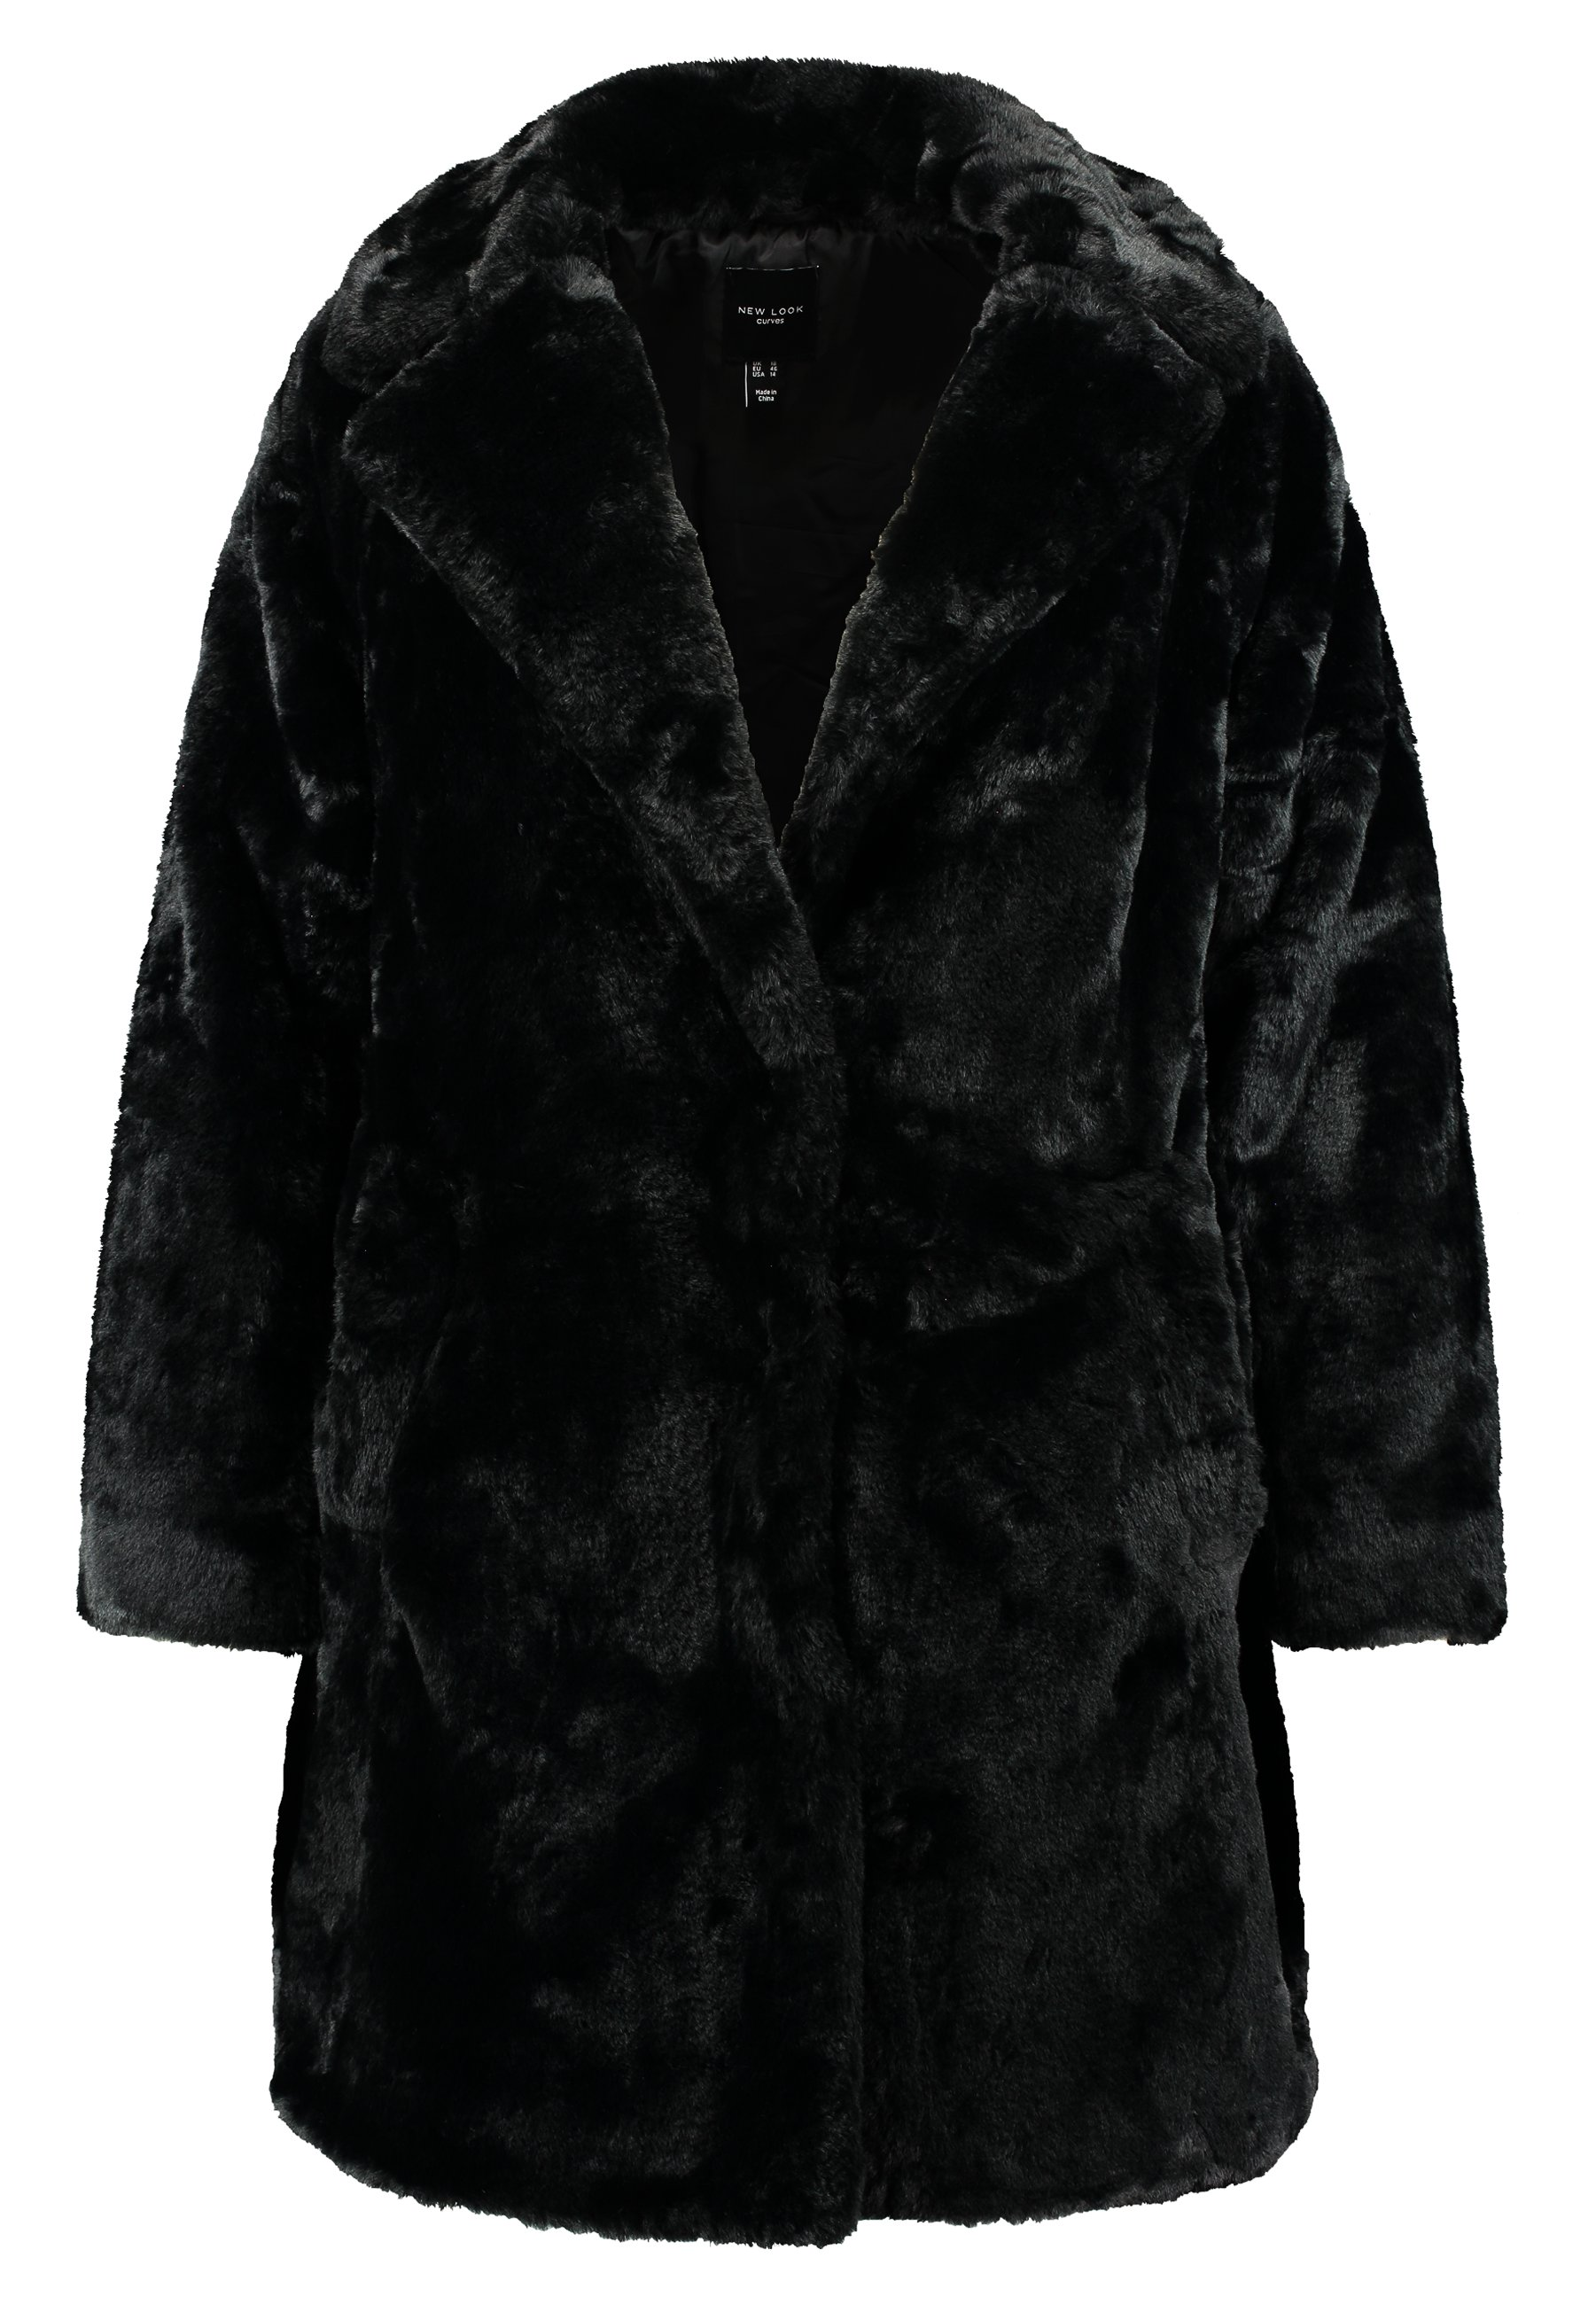 New Look Curves Coat - Vinterkappa /-rock Black